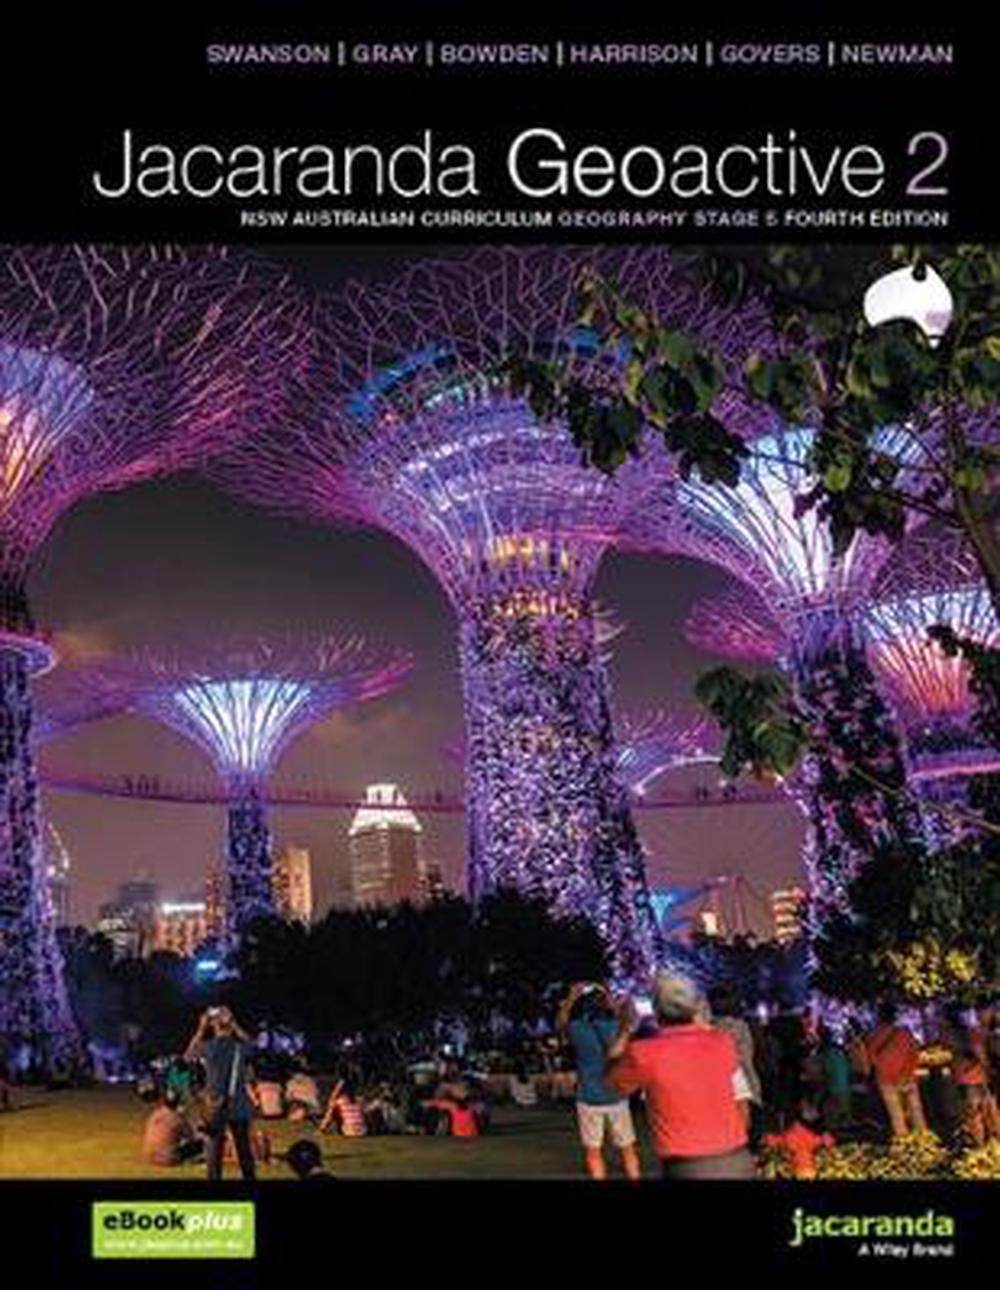 jacaranda geoactive 2 nsw australian curriculum geography stage 5 fourth edition ebookplus